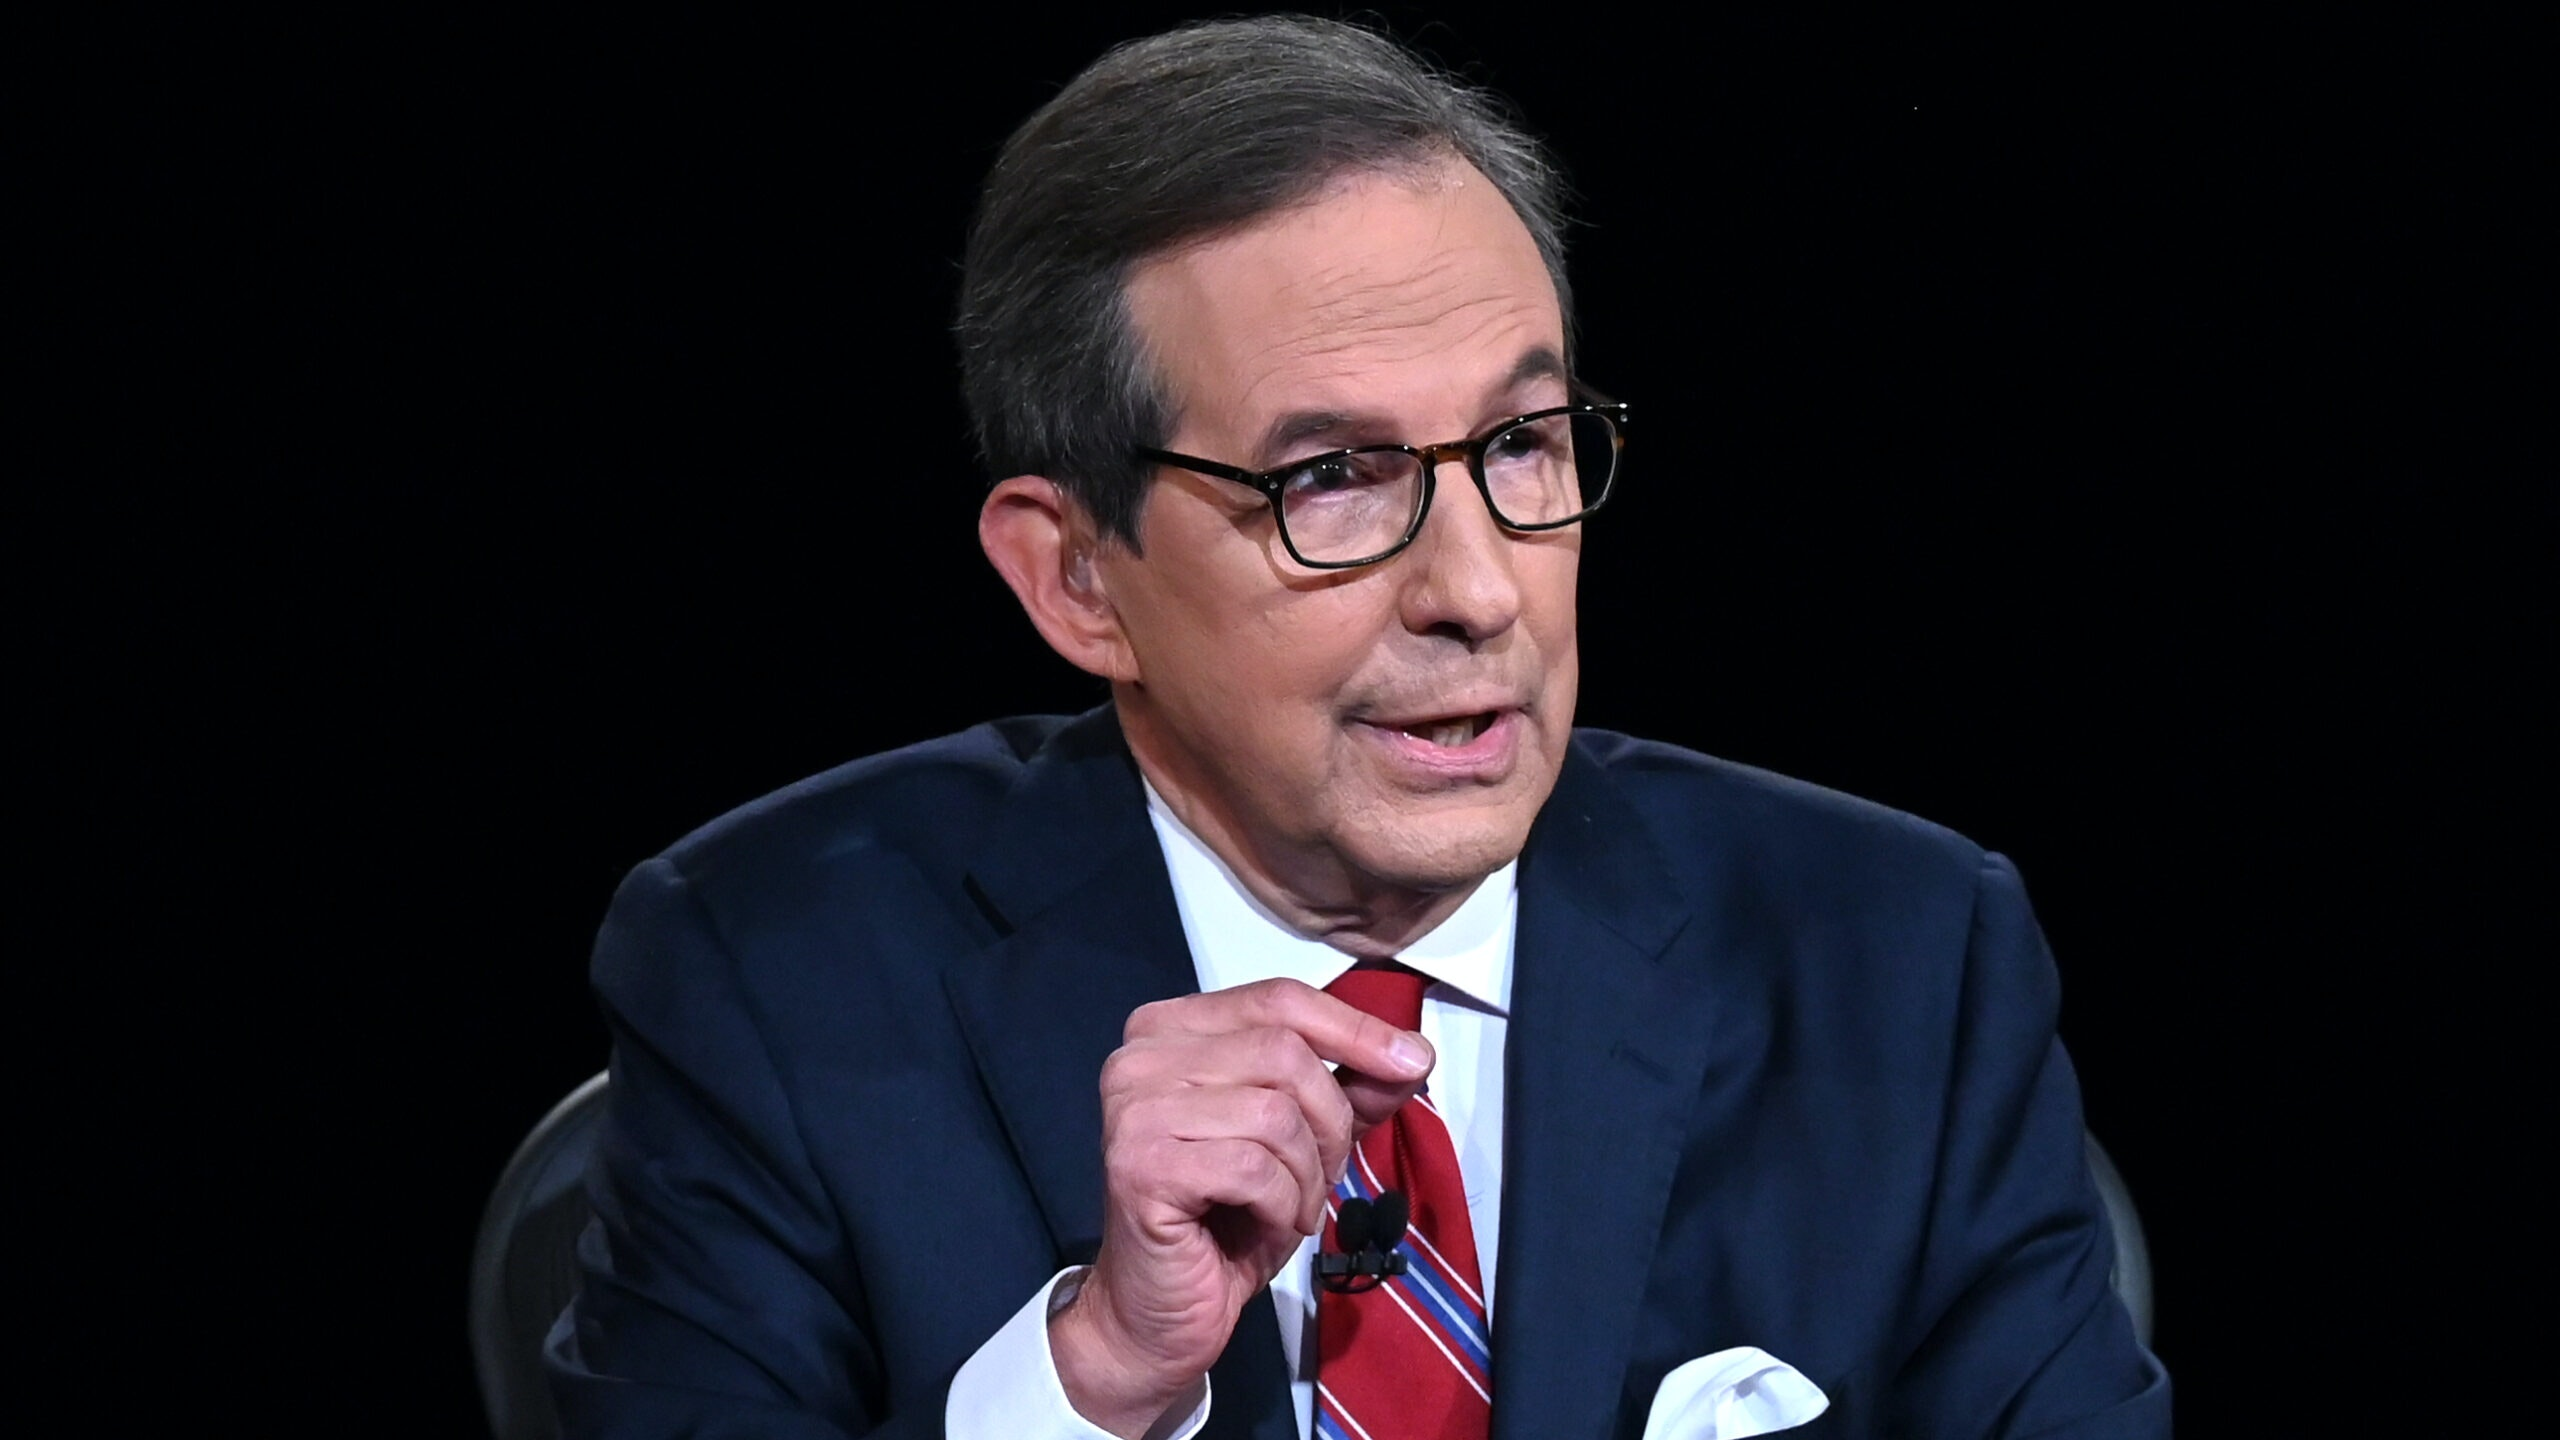 Debate moderator and Fox News anchor Chris Wallace directs the first presidential debate at Case Western Reserve University and Cleveland Clinic in Cleveland, Ohio, on September 29, 2020.